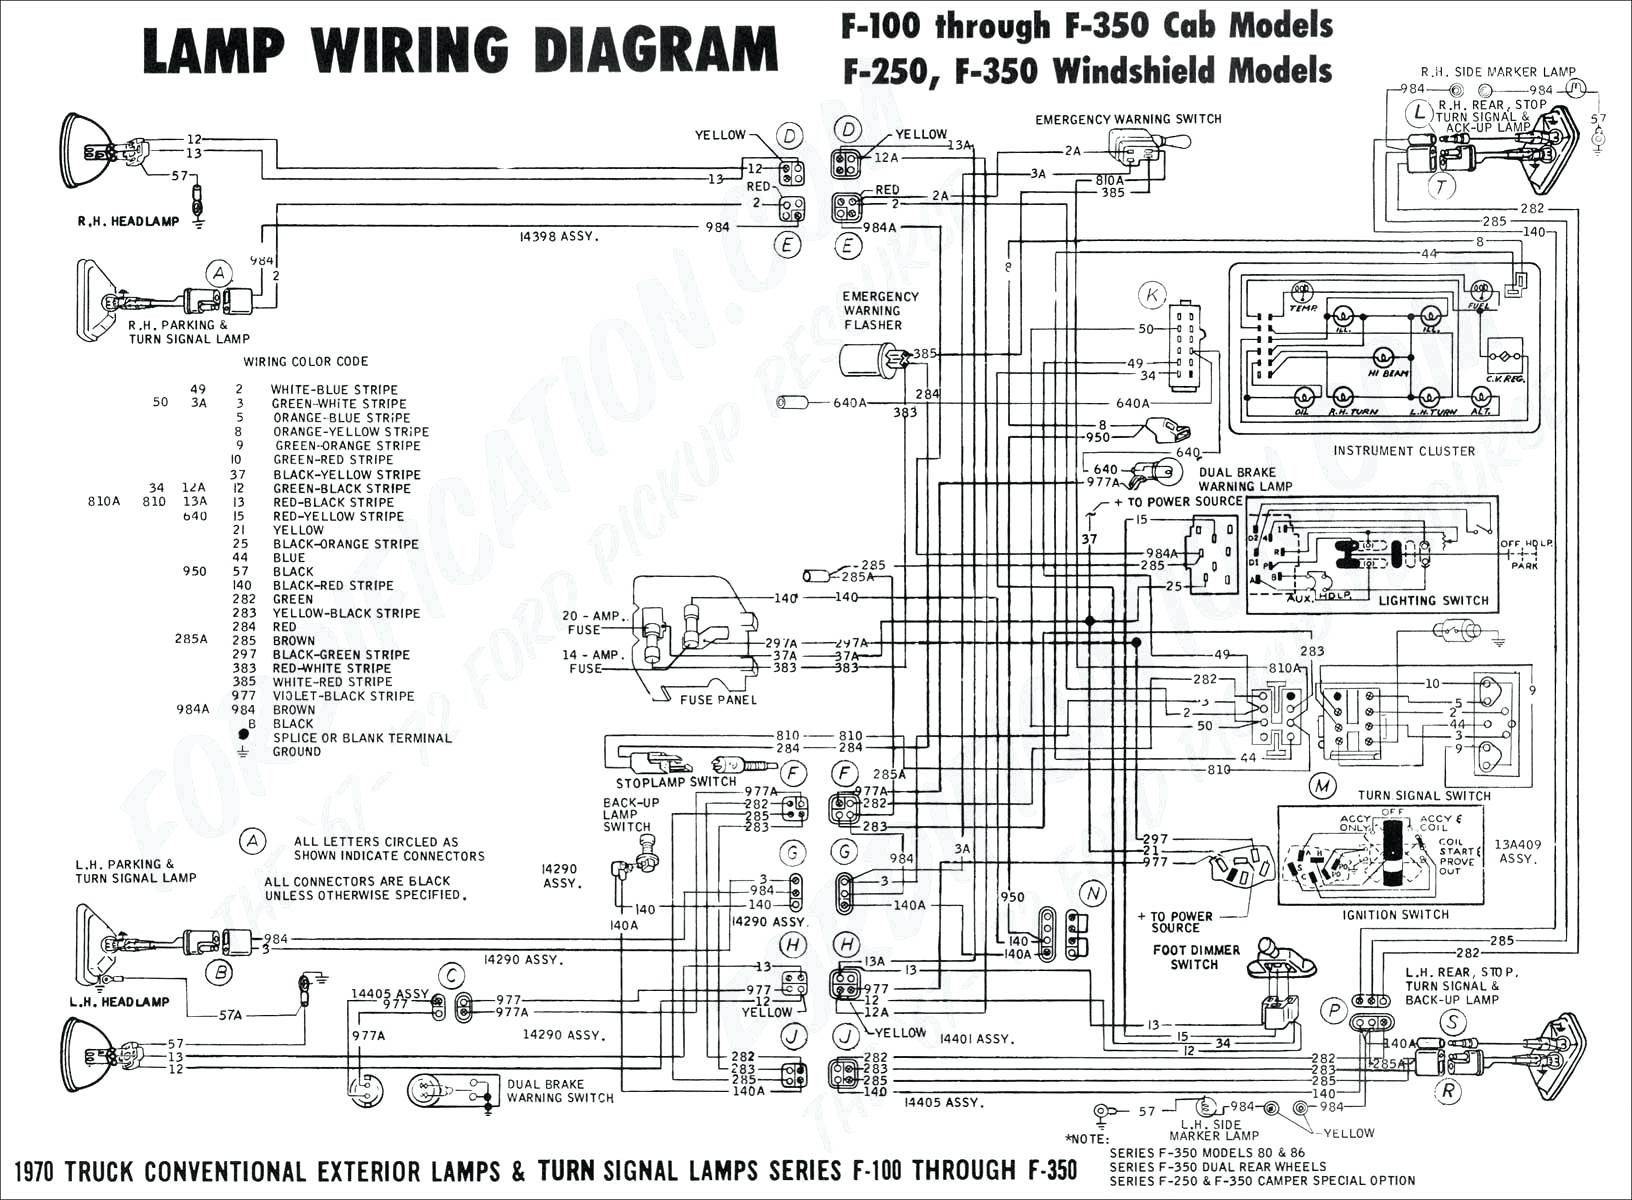 1998 ford Contour Engine Diagram ford F53 Exhaust Diagram Data Schematics Wiring Diagram • Of 1998 ford Contour Engine Diagram